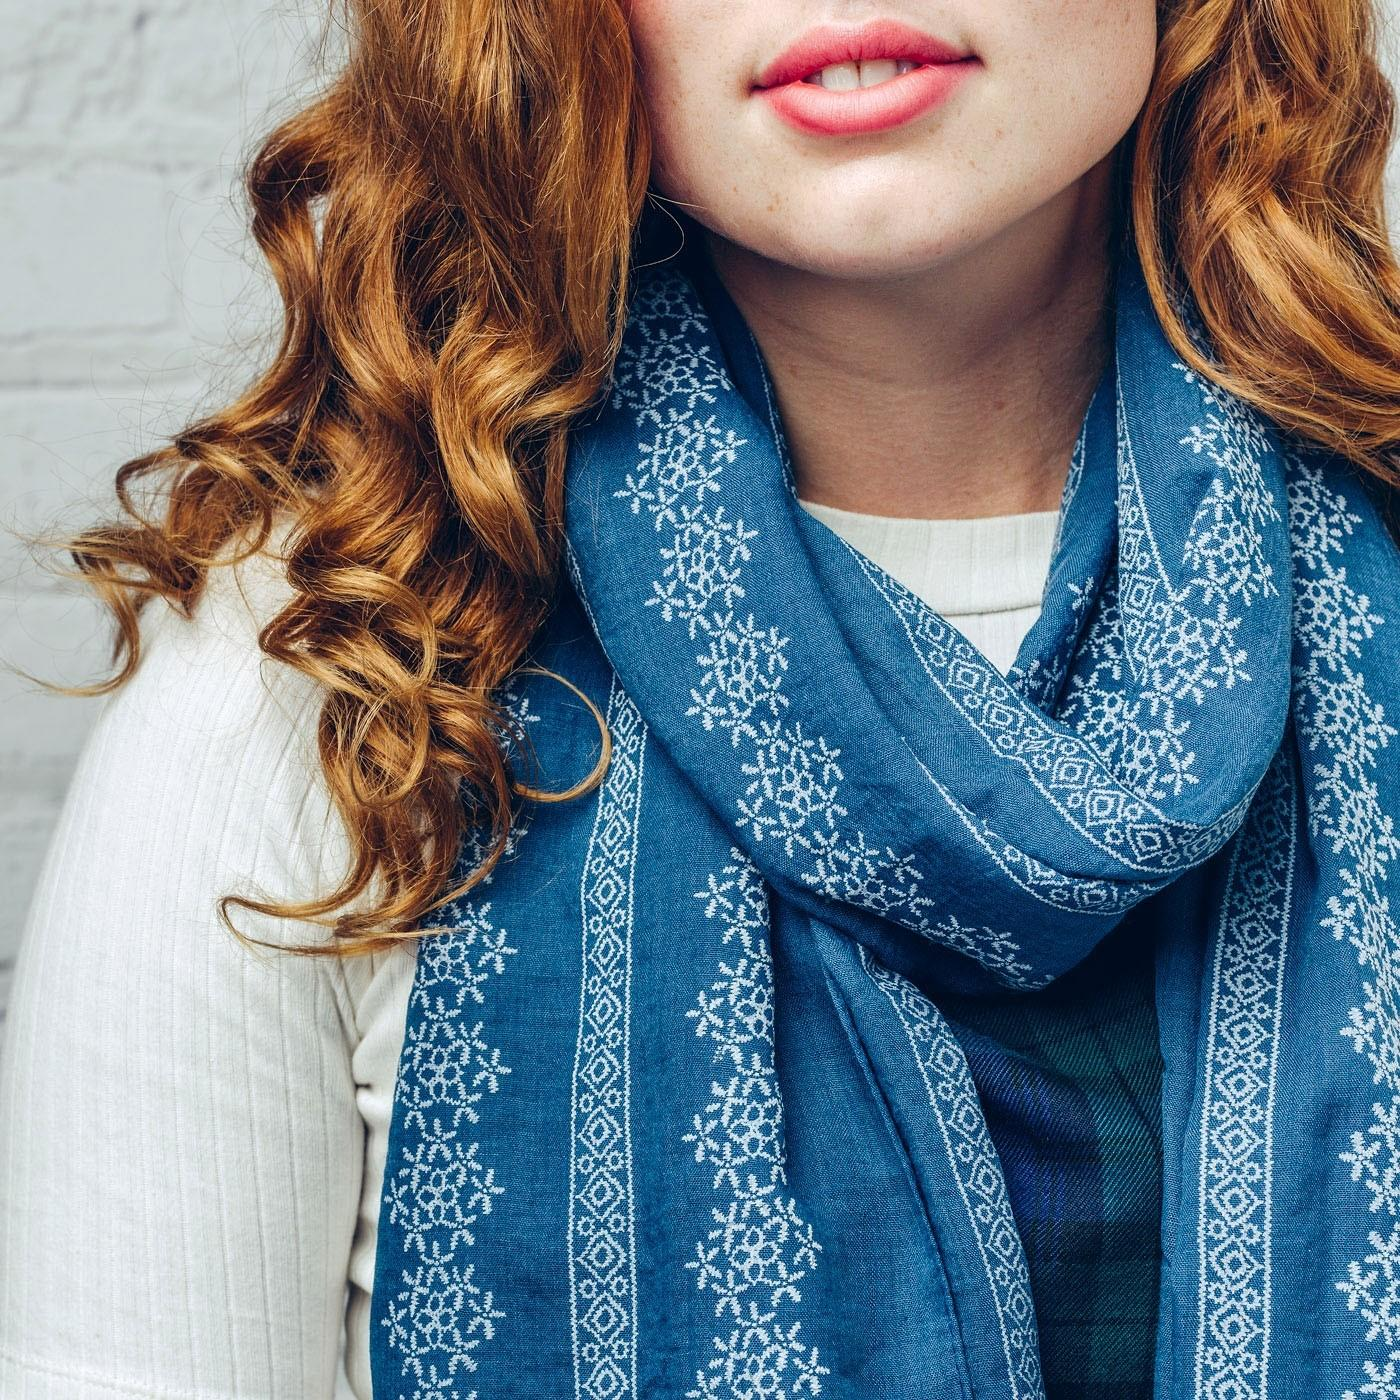 Kelly daisy scarf in blue